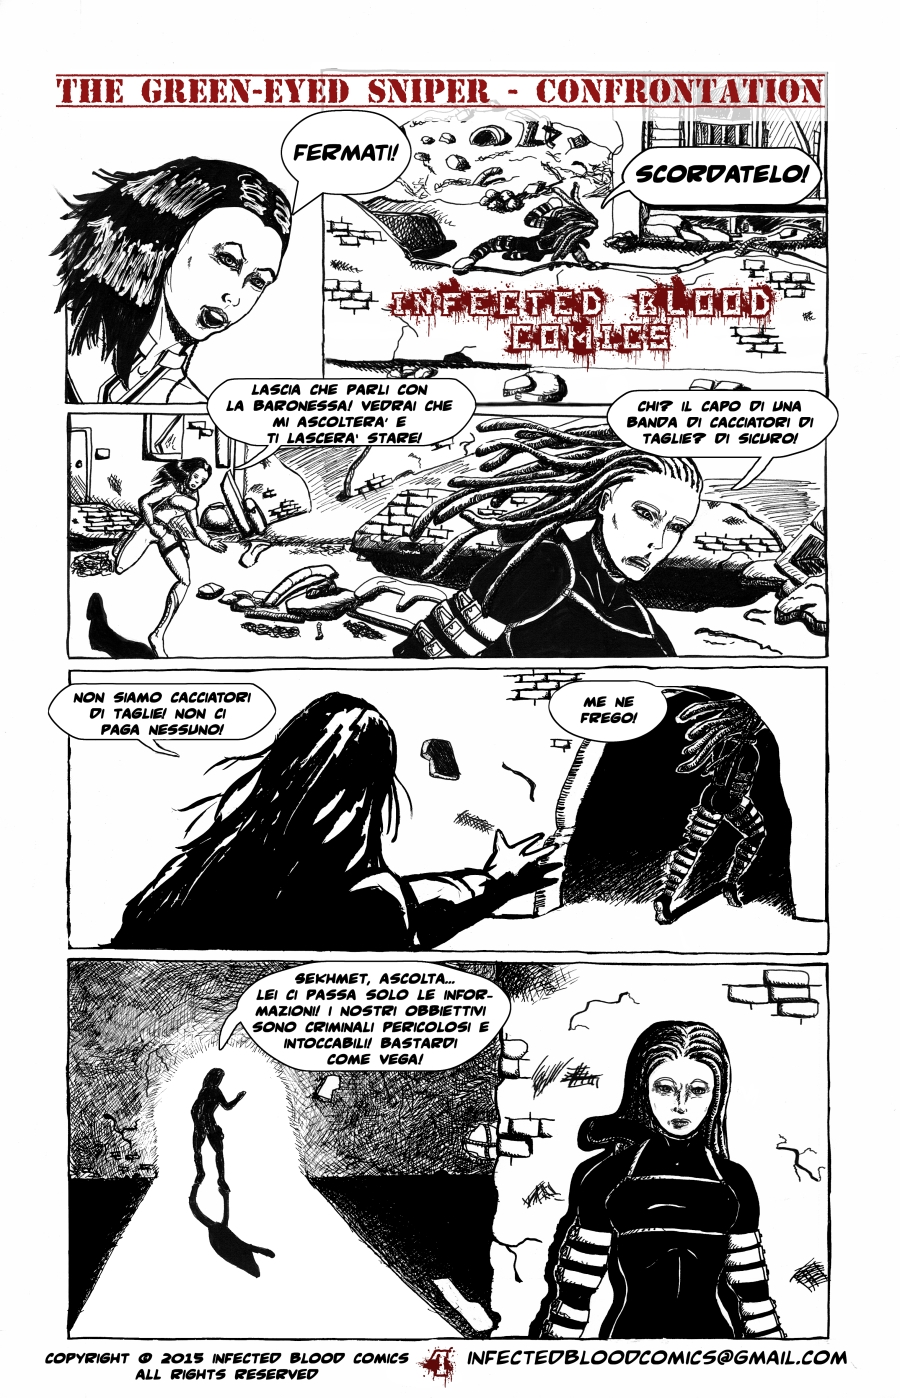 GES_Part2_Confrontation_Page1_ITA